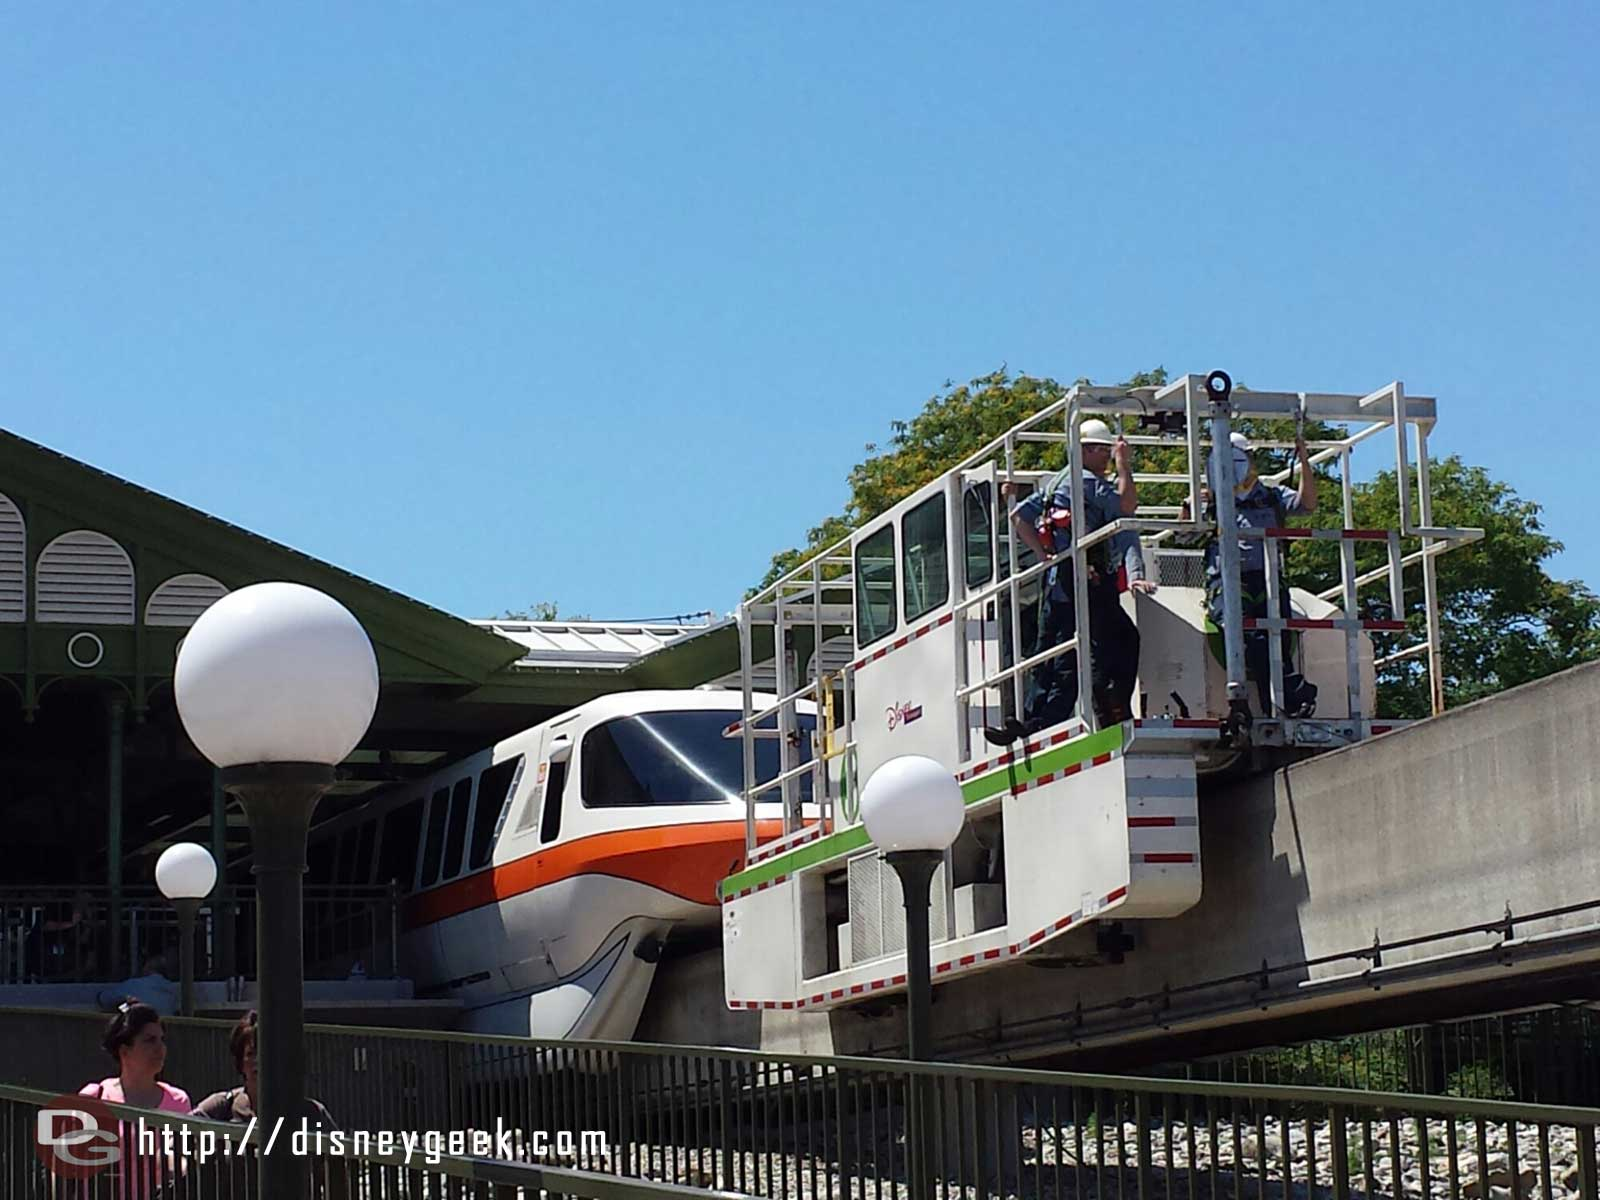 The monorail issue appears to be with Orange at the Magic Kingdom station now.